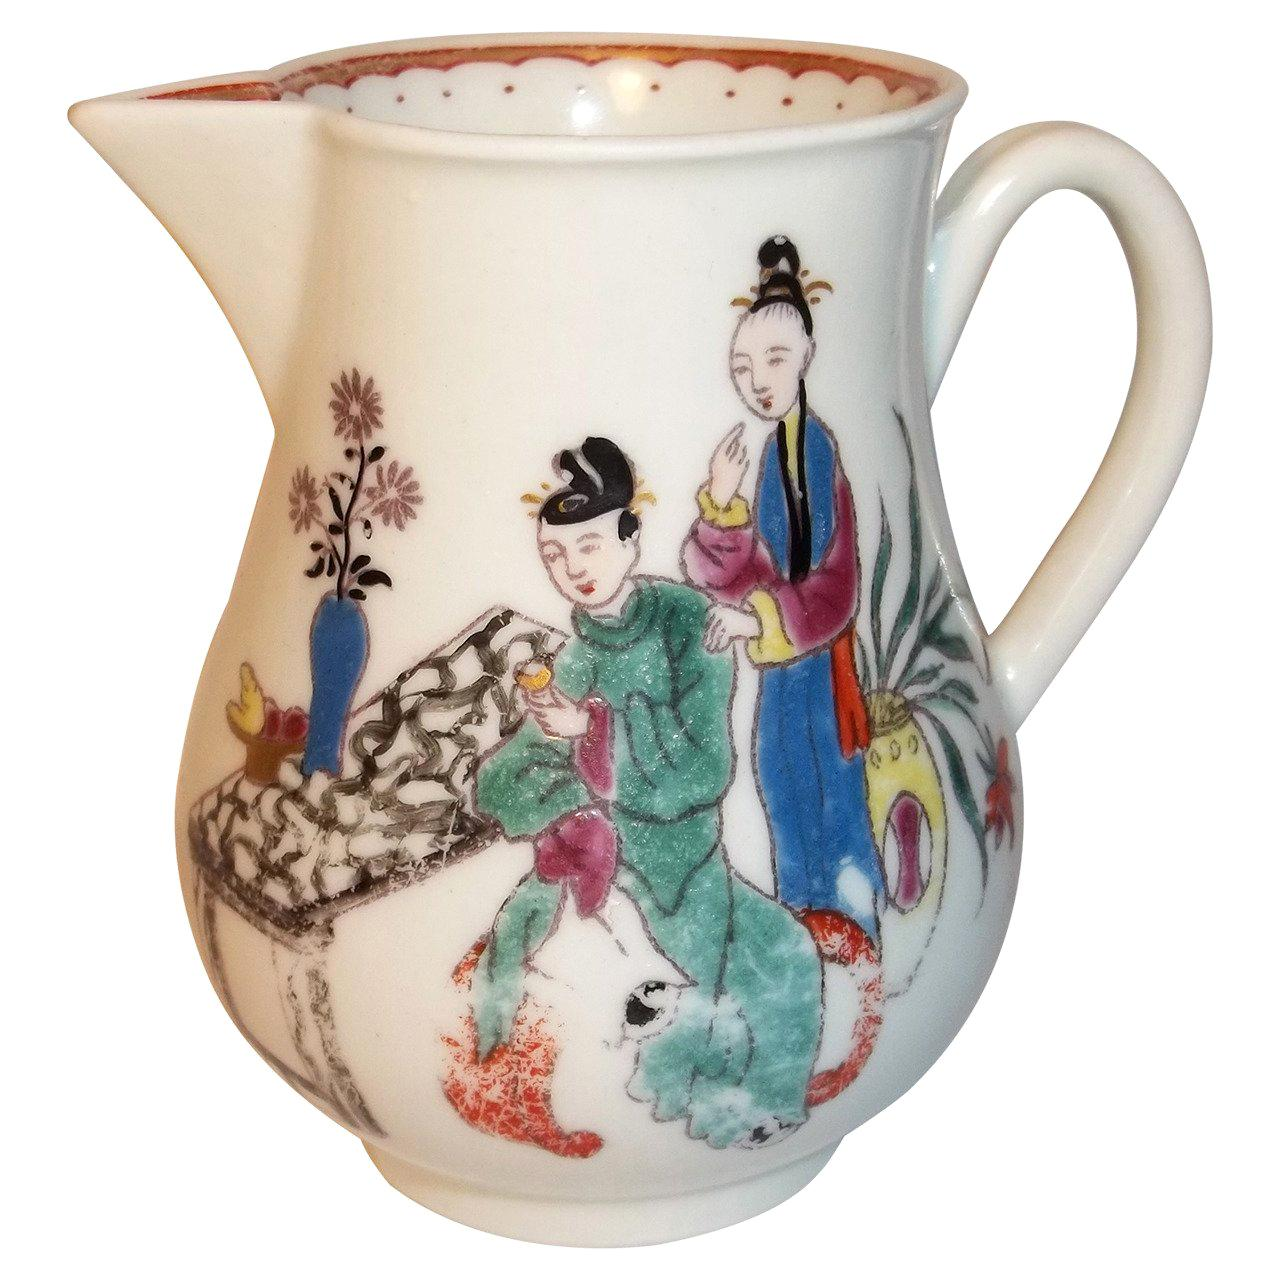 First Period Dr. Wall Worcester Milk Jug in Chinese Family Pattern, Circa 1770